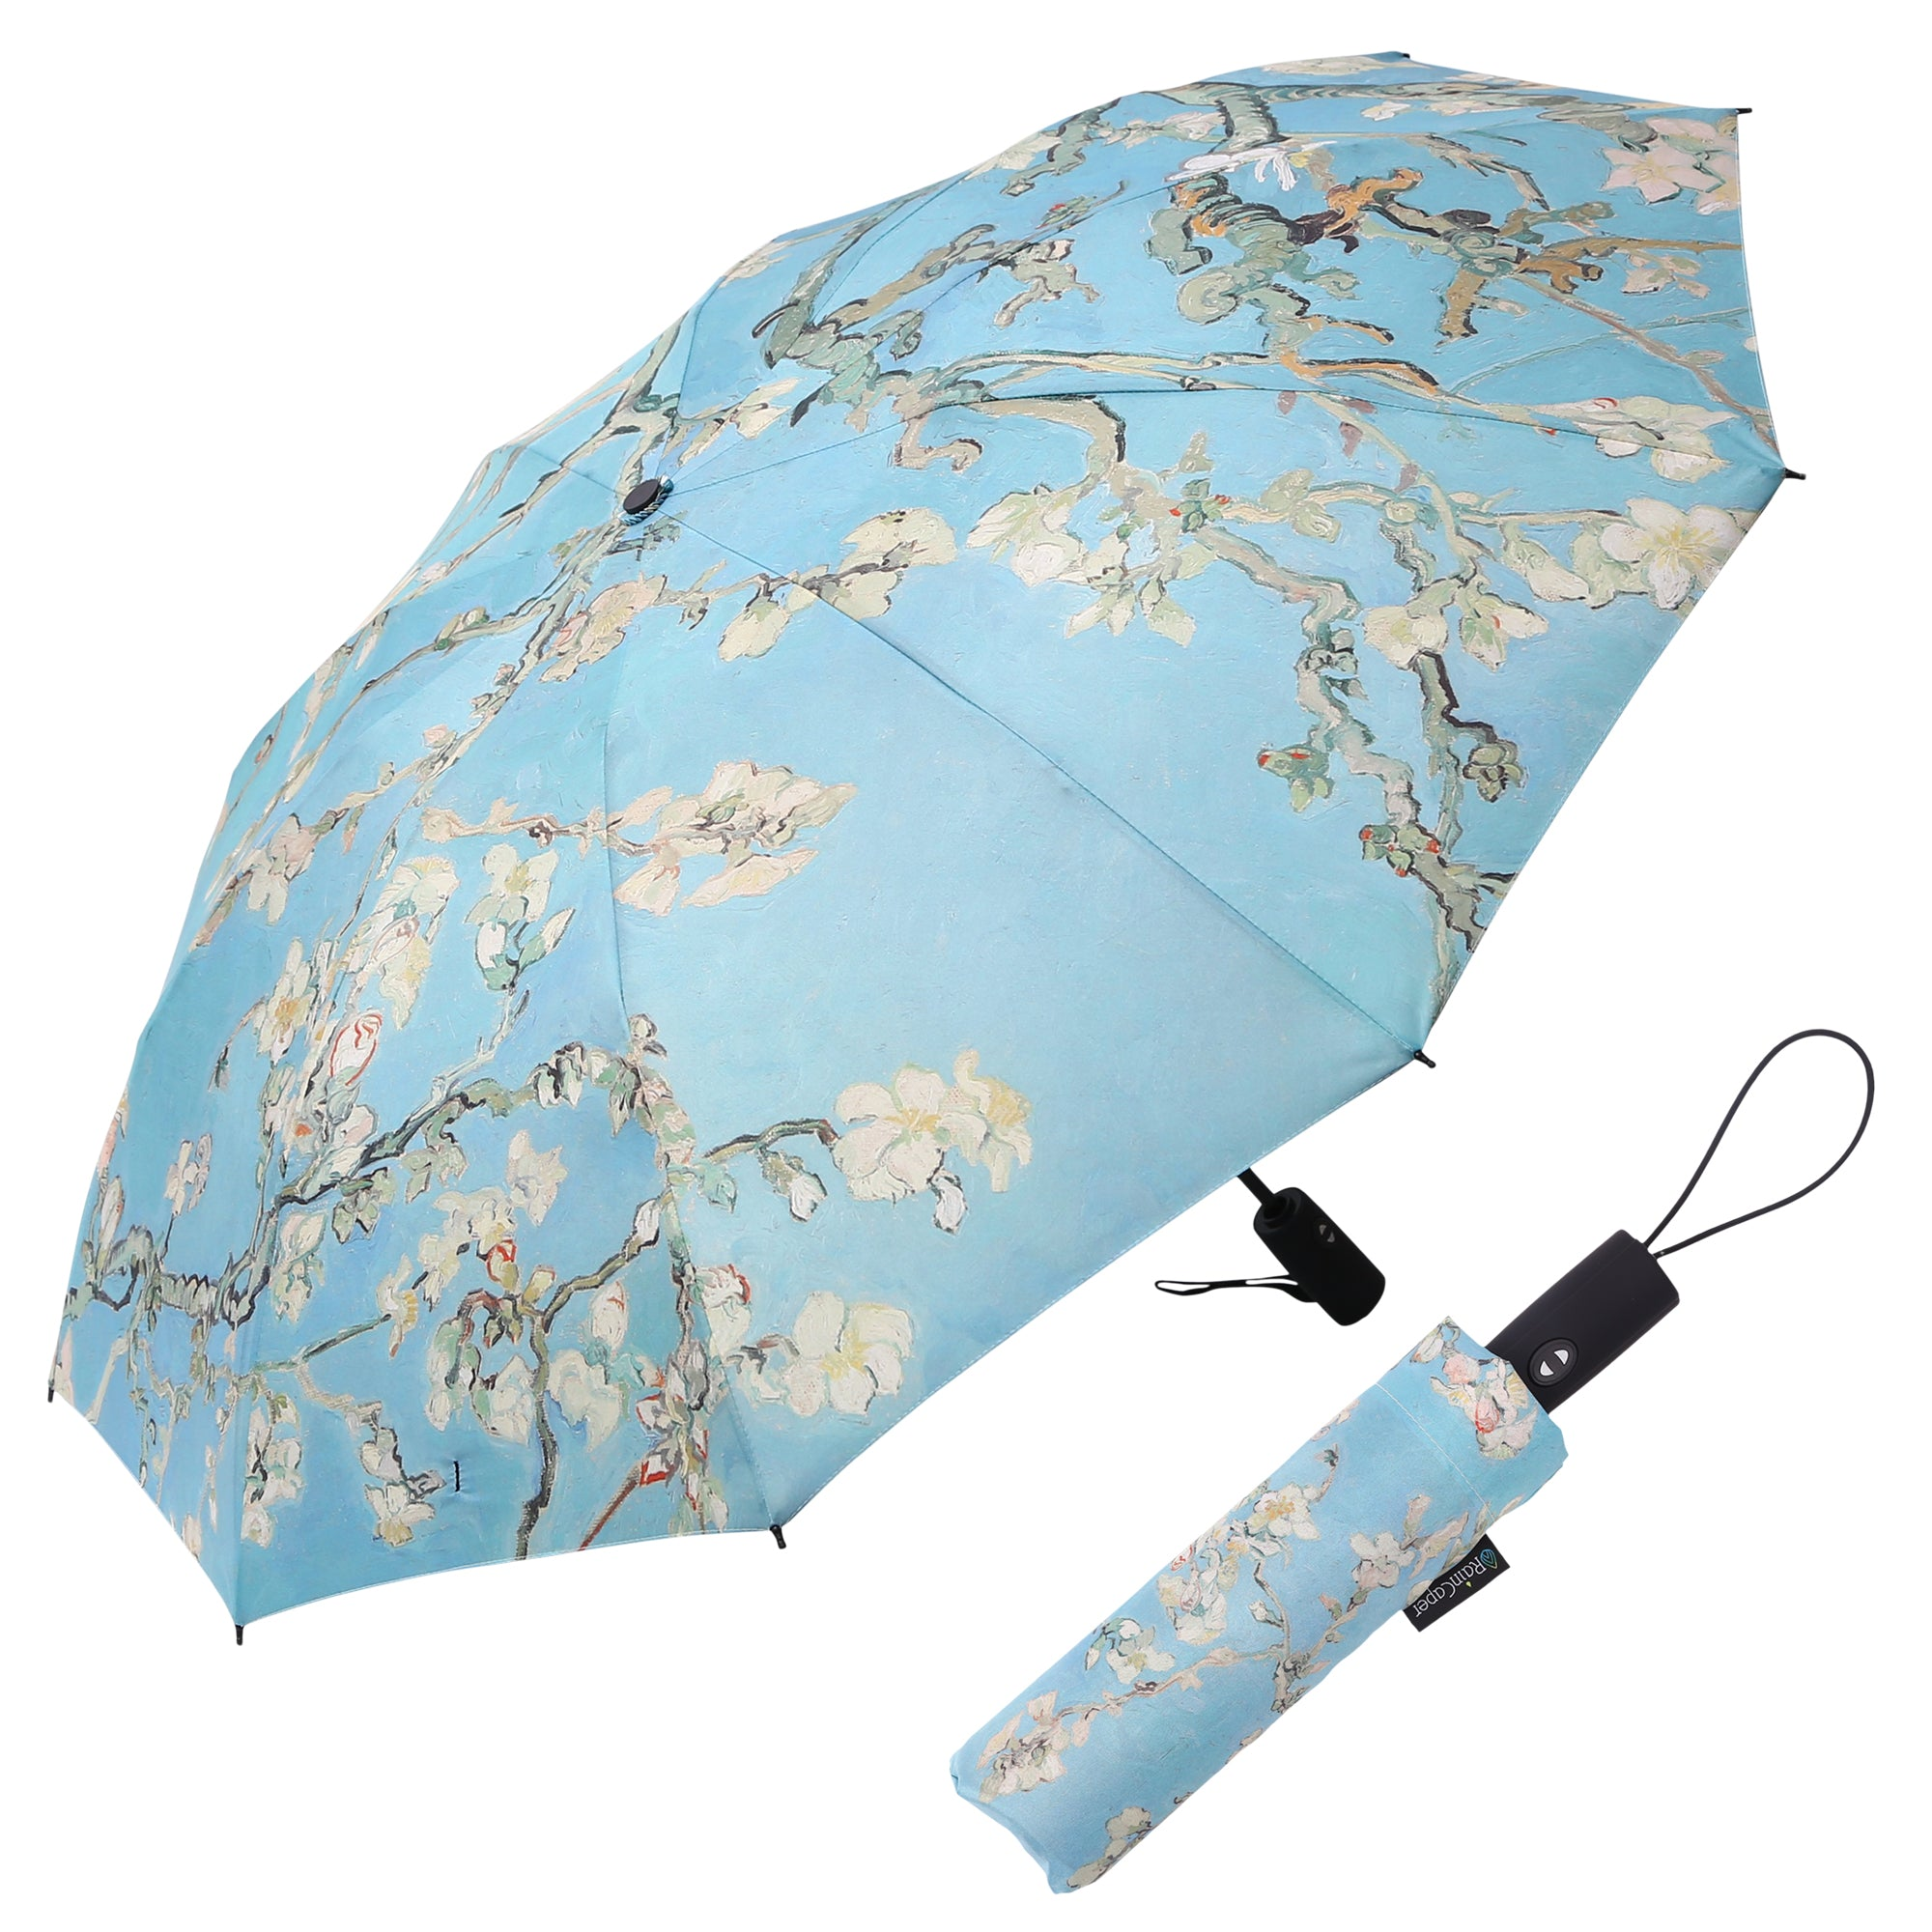 Image of a RainCaper van Gogh Almond Blossom folded traveling umbrella shown both open and closed